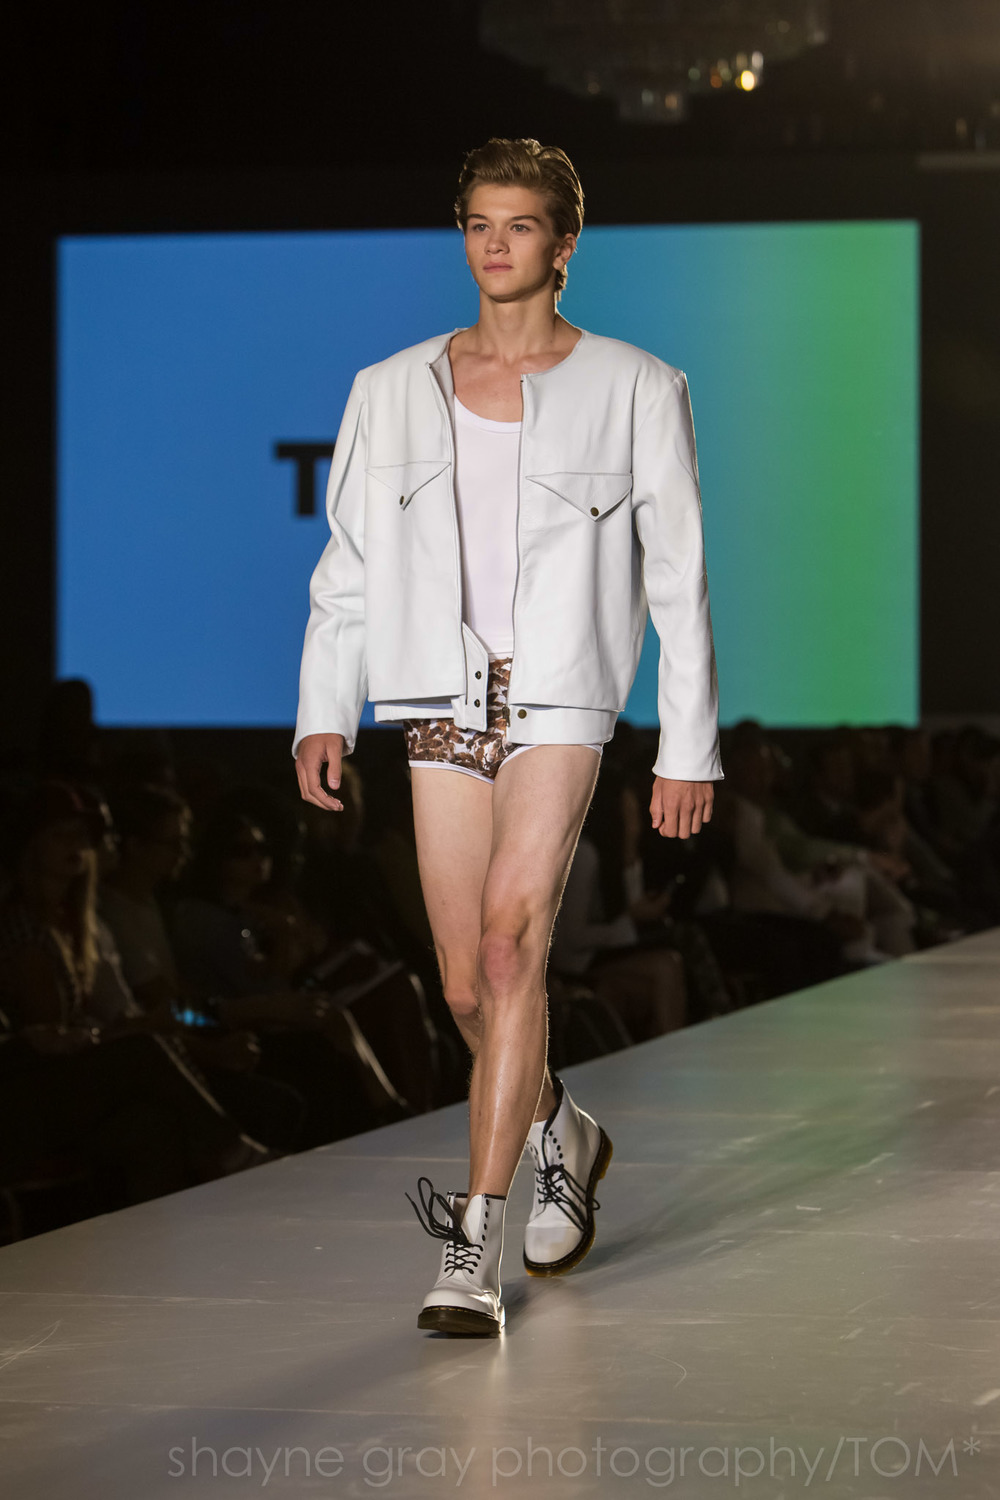 Shayne-Gray-Toronto-men's-fashion_week-TOM-worth-by-david-c-wigley-6246.jpg